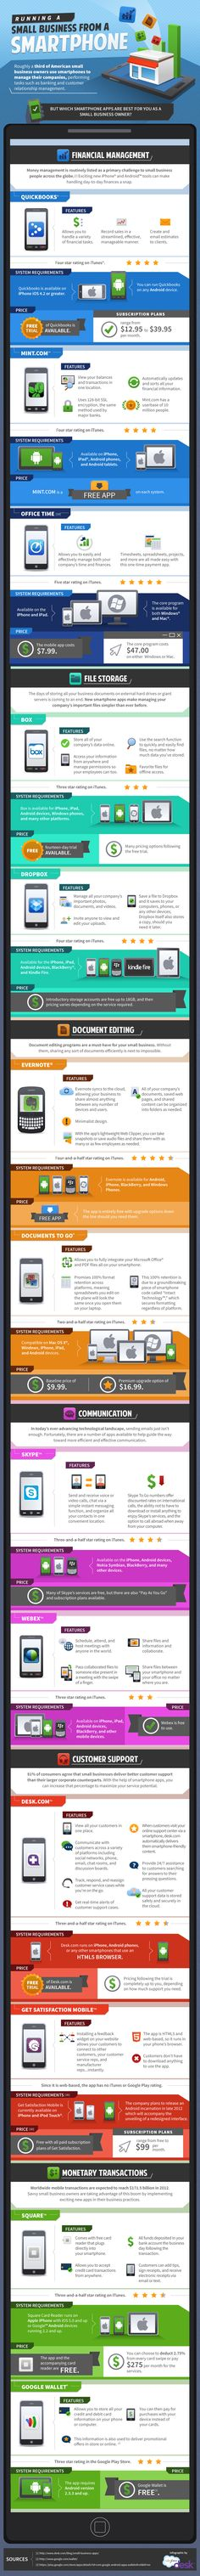 Can Your Smartphone Run Your Business?